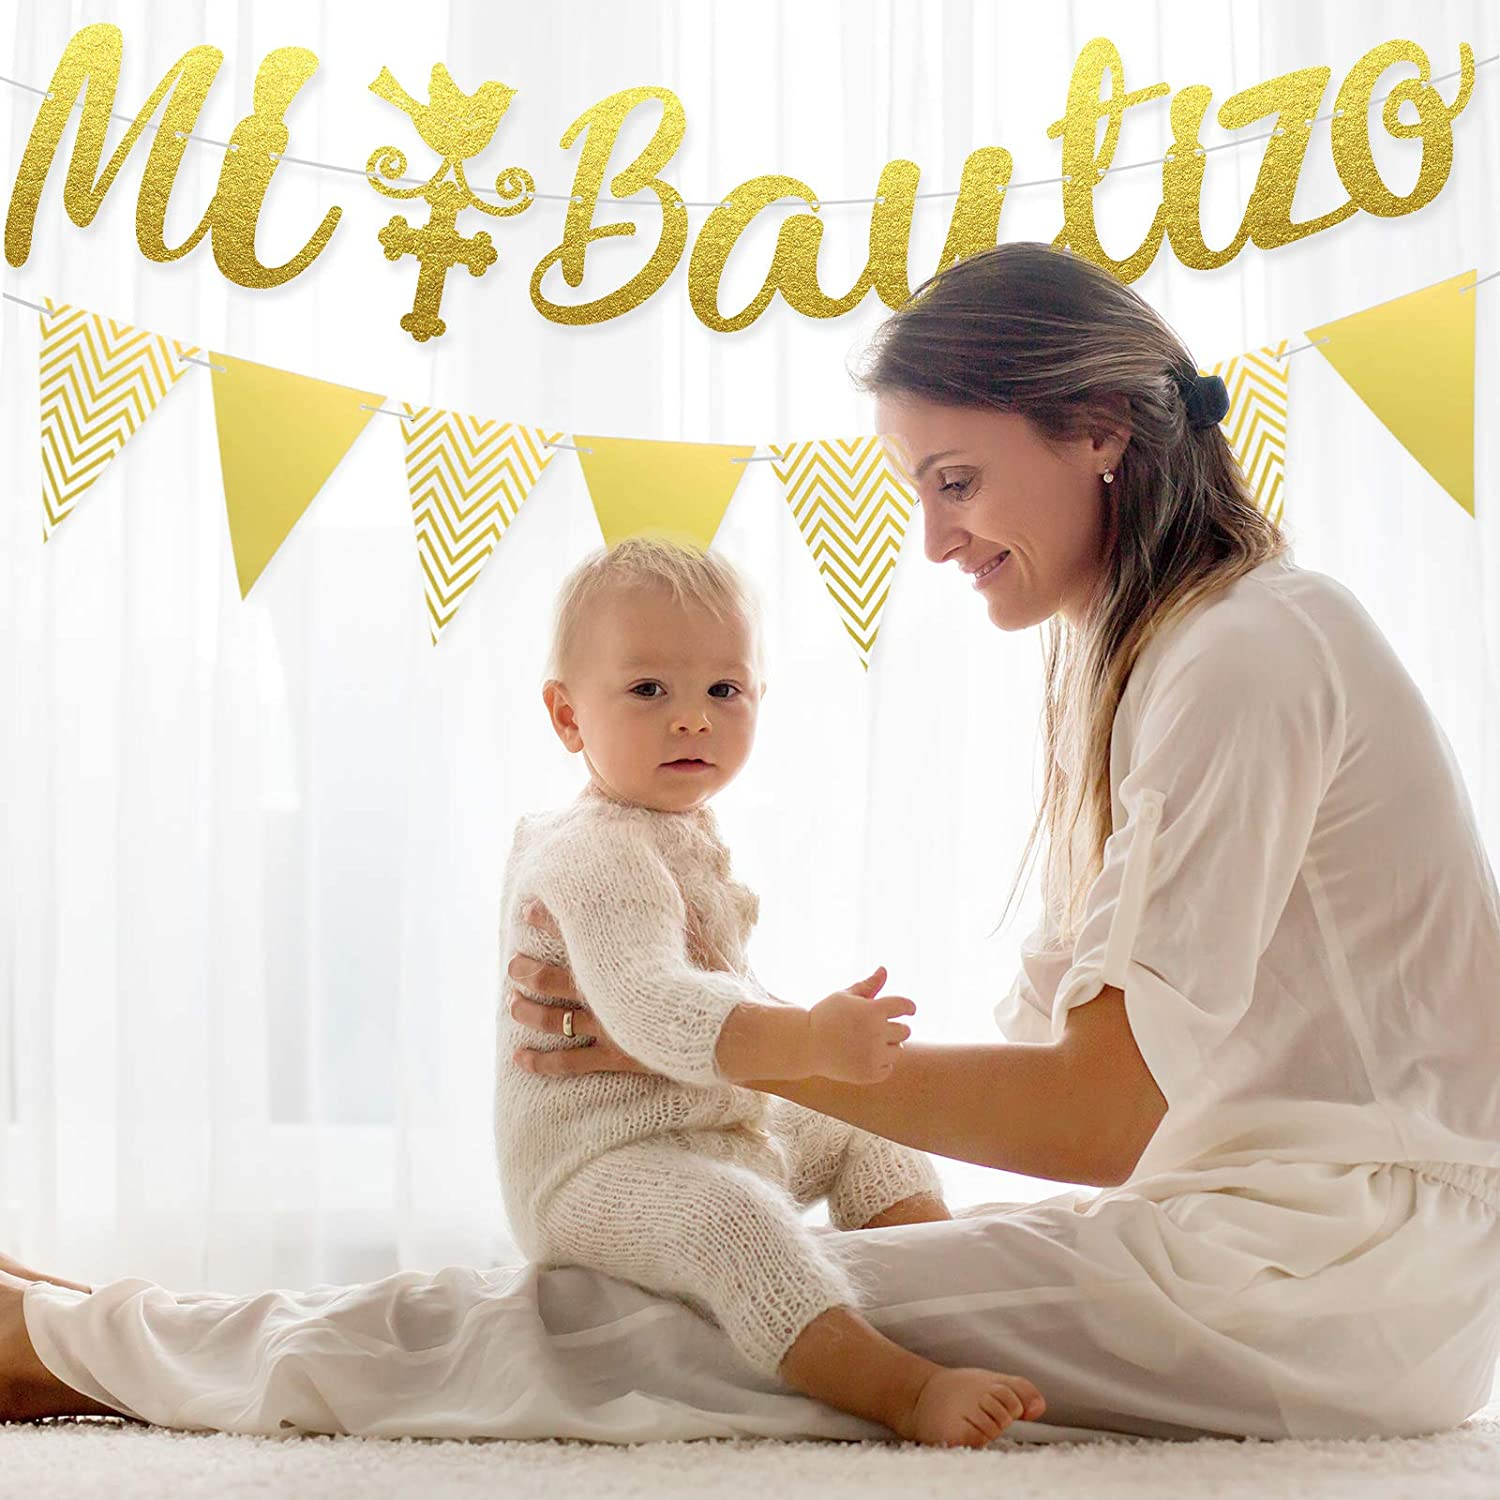 Pre-Strung Banners Gold Glitter Mi Bautizo Banner Triangle Flag Banner Glitter Mi Bautizo Cake Topper First Communion Decoration Accessories Baby Shower Supplies Party Ornaments